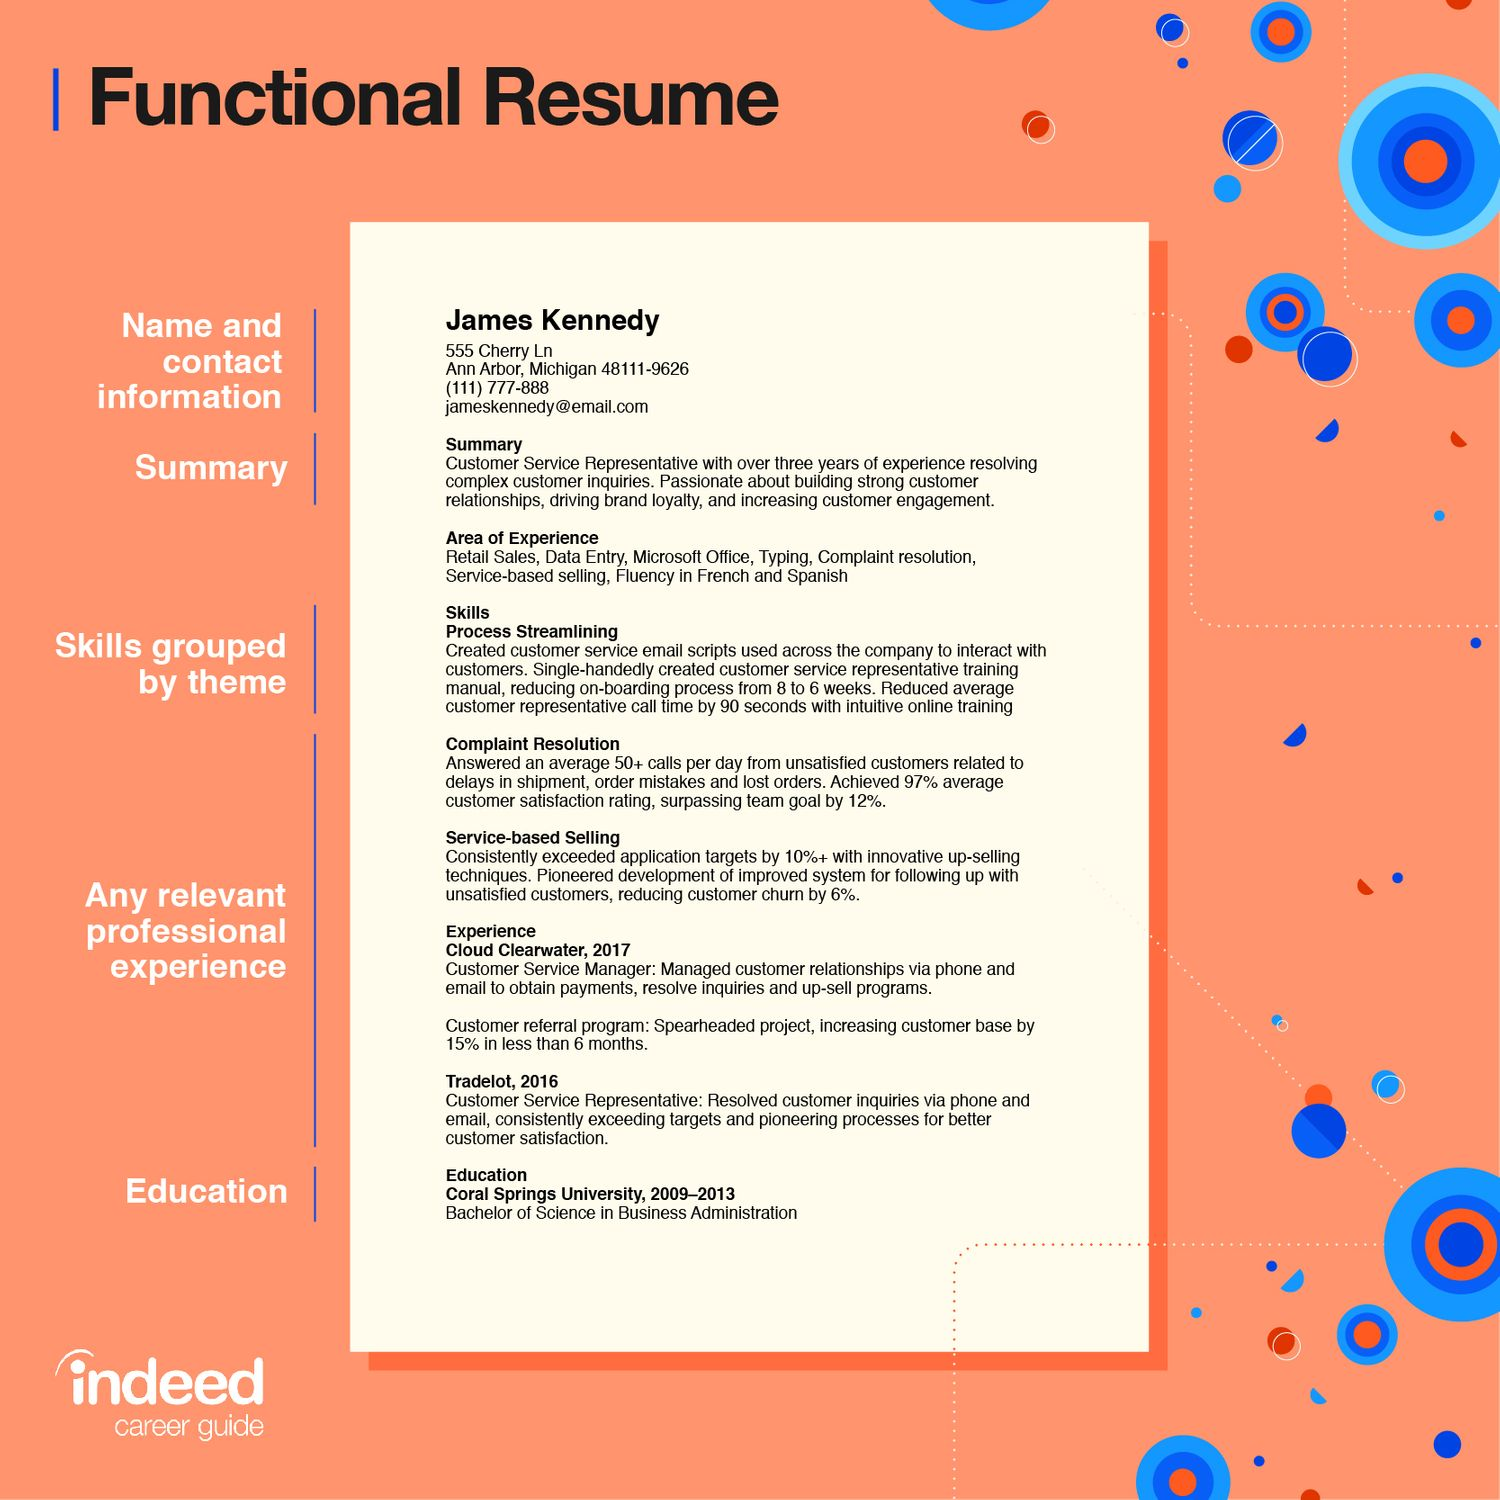 resume format guide tips and examples of the best formats indeed for job interview Resume Best Resume Format For Job Interview